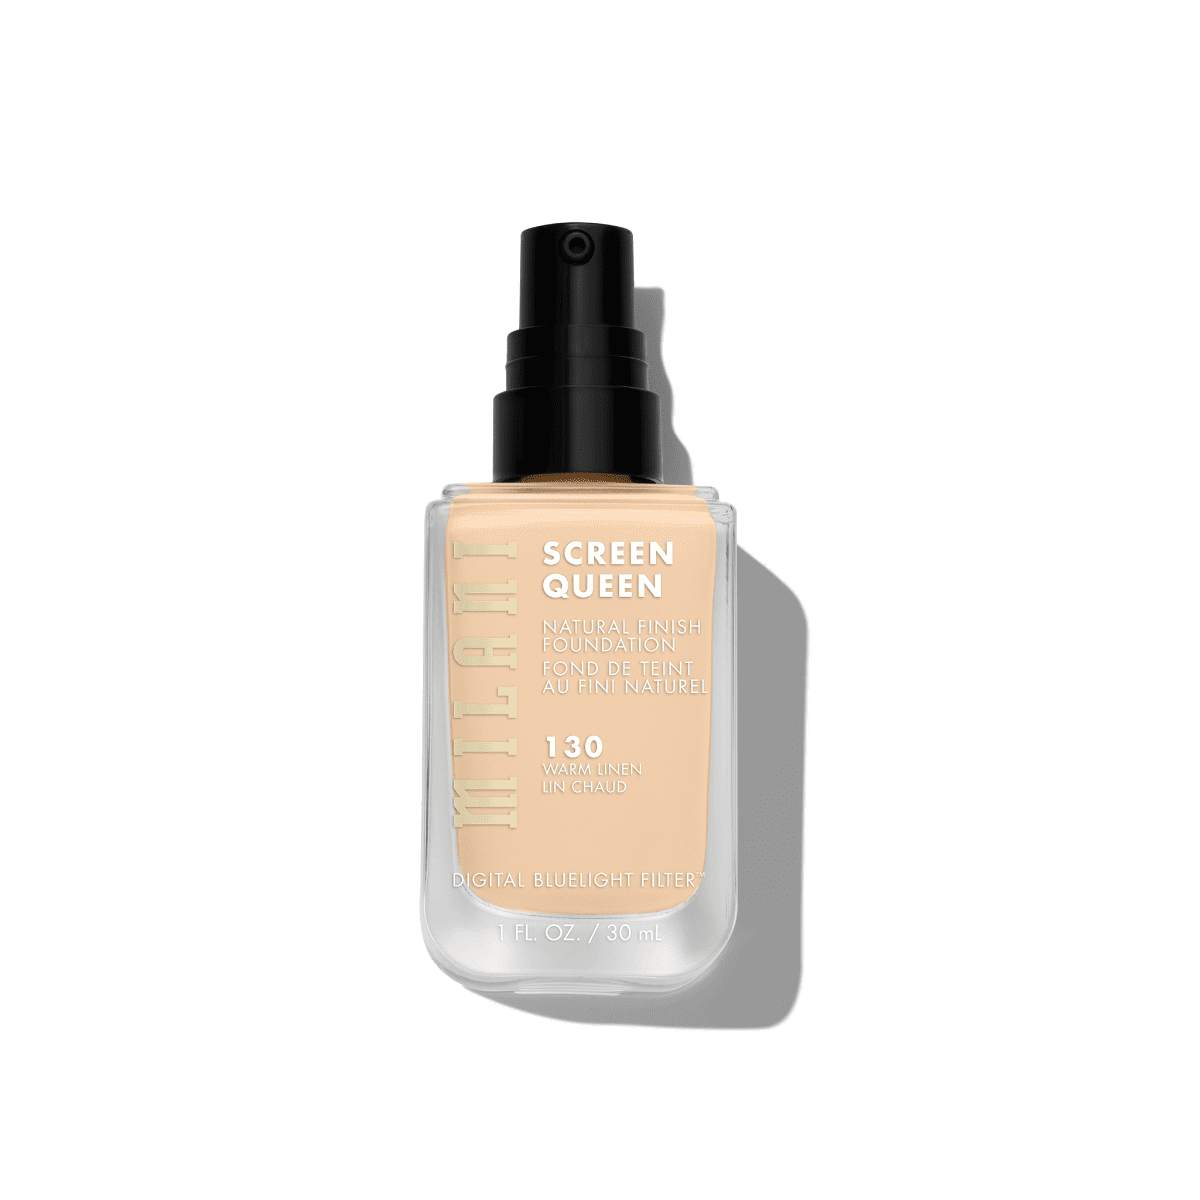 Milani Screen Queen Foundation - 130 Warm Linen